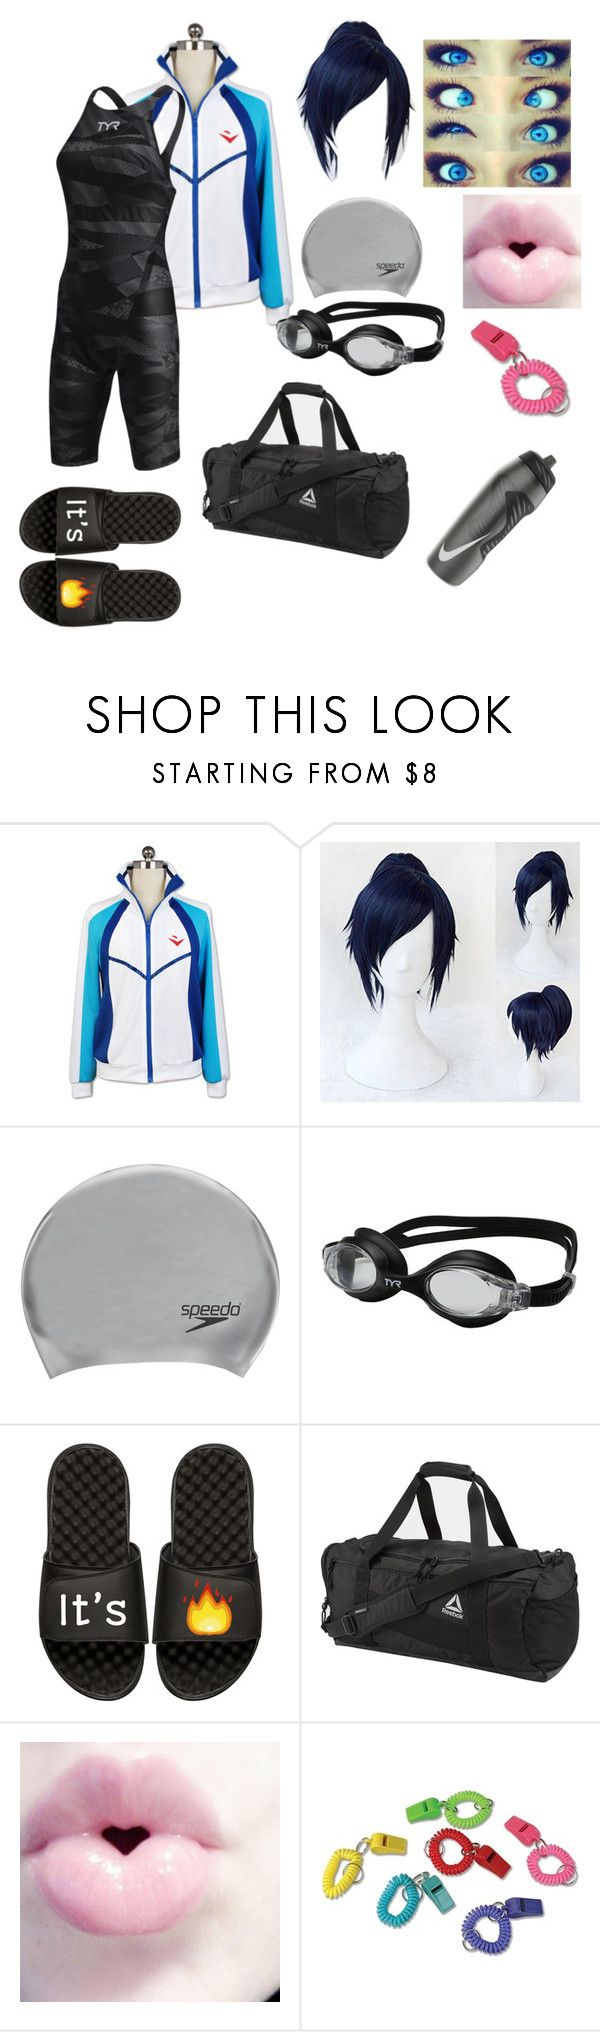 """Untitled #1016"" by dearbemorehansen5 ❤ liked on Polyvore featuring Speedo, TYR, iSlide, Reebok and NIKE"